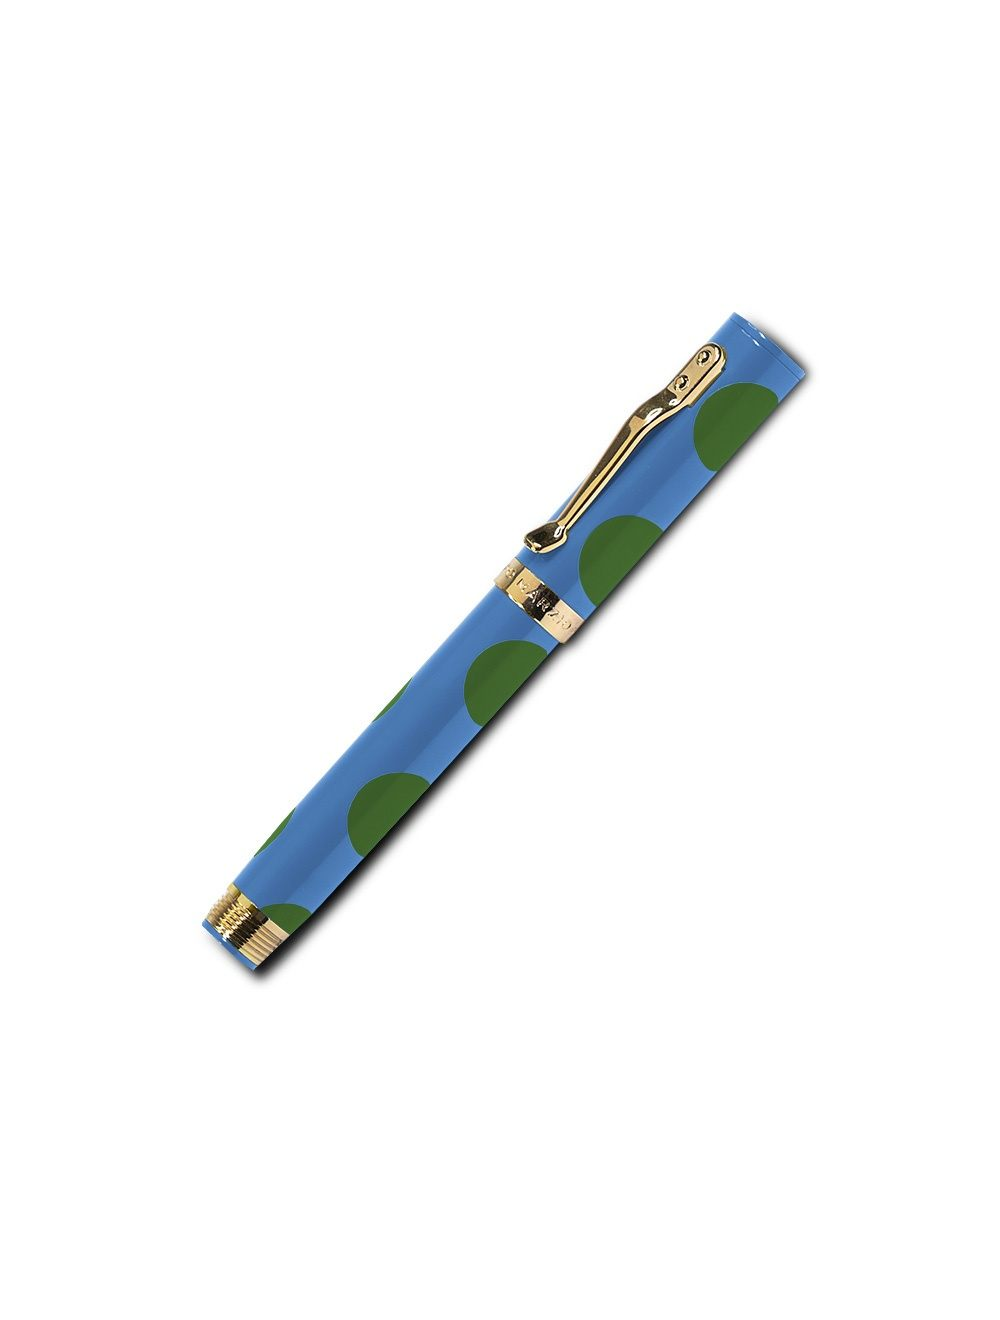 Les Pois Fountain Pen - Blue Jeans